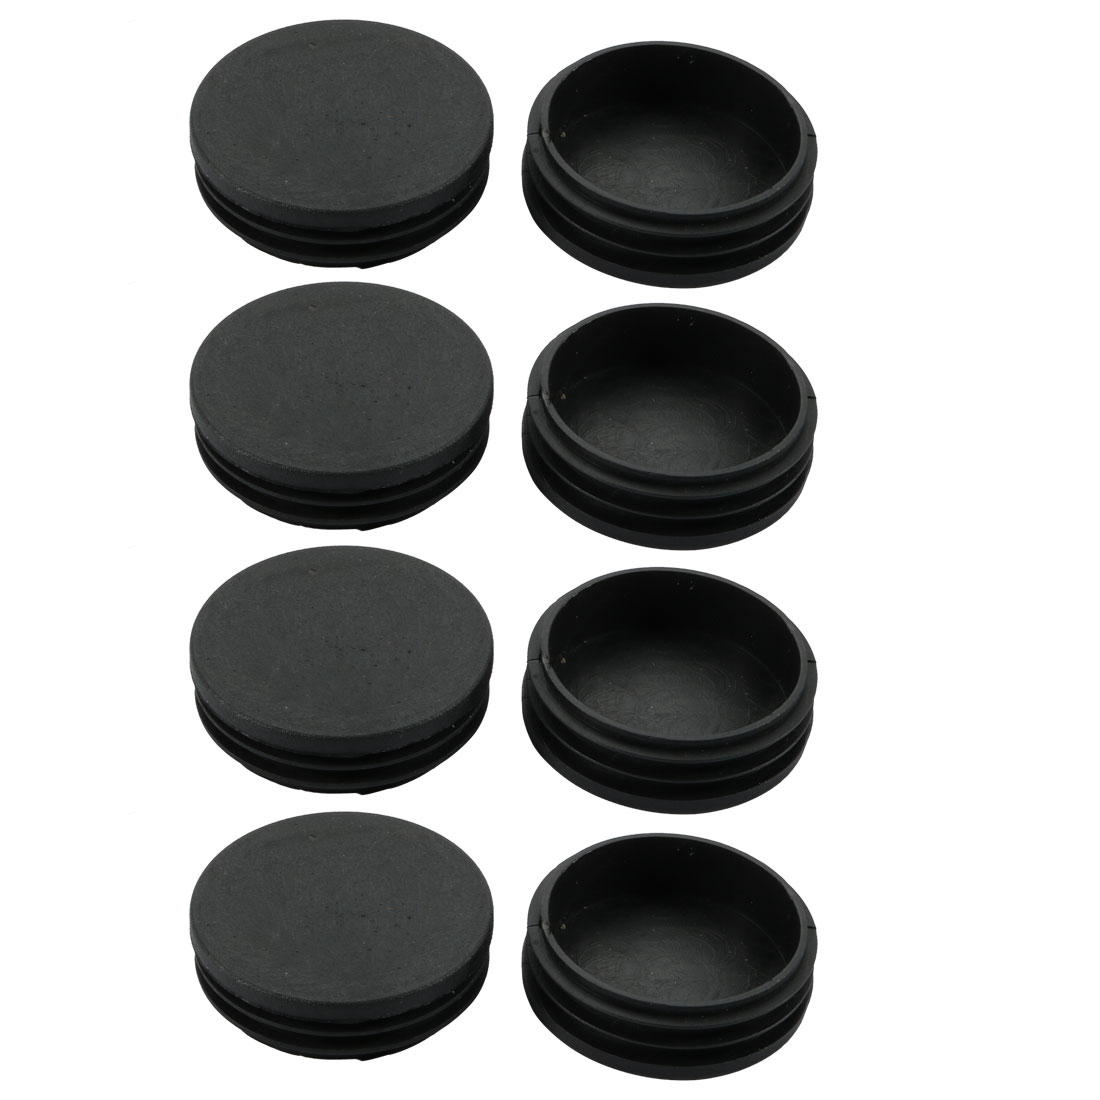 8pcs 58mm Dia Black Plastic Round Cabinet Chair Leg Insert Floor Cover Protector